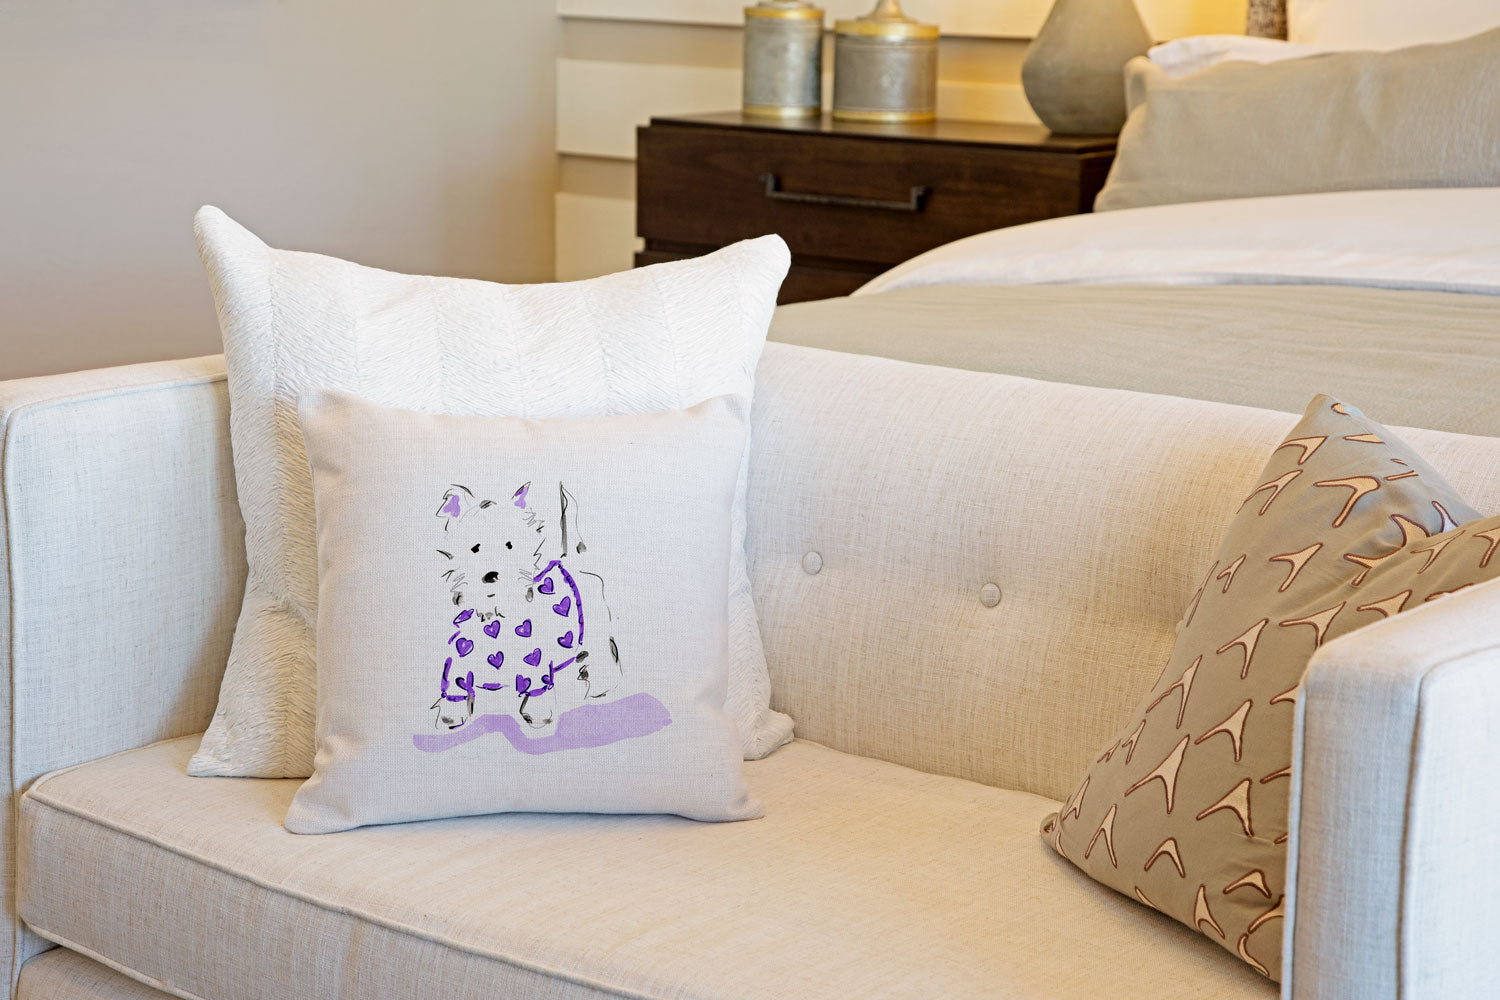 Willie Westie Throw Pillow Cover - Dog Illustration Throw Pillow Cover Collection-Di Lewis